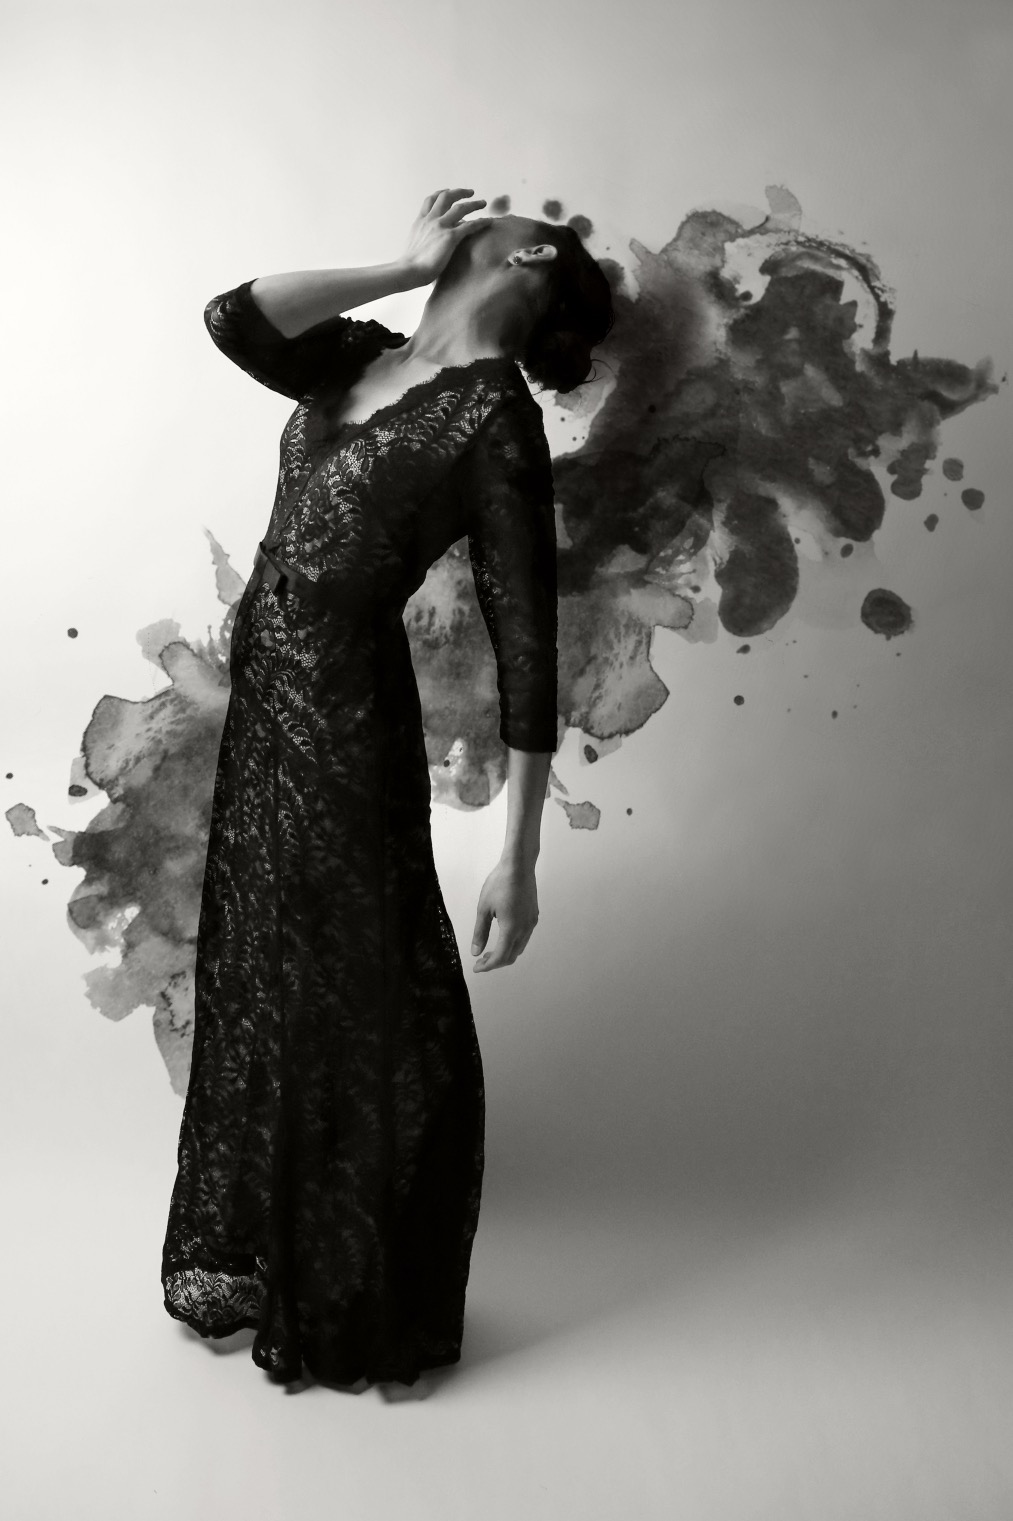 Tears As They Dry / Josephine Cardin (5)